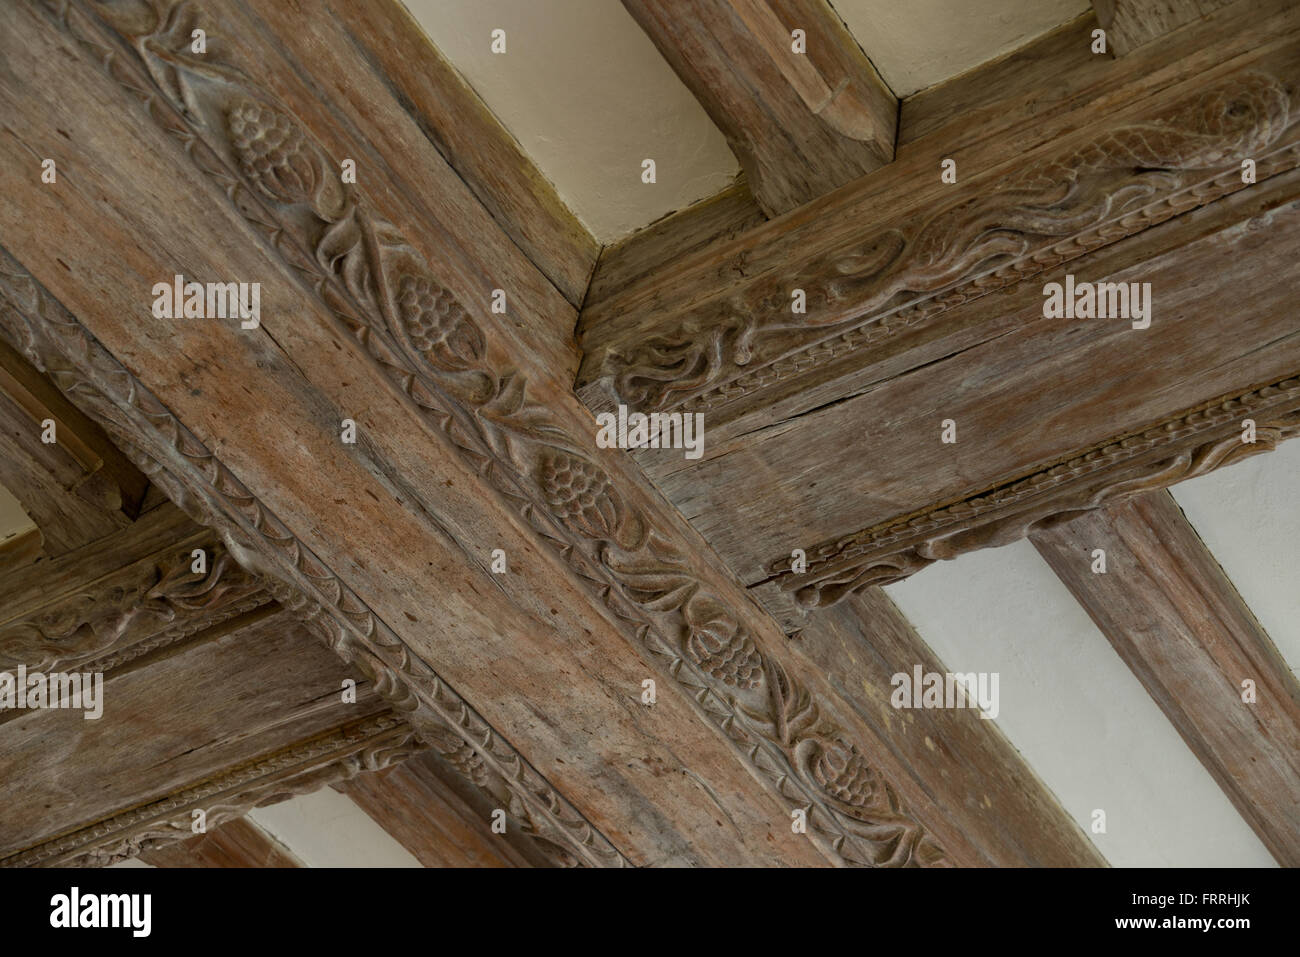 Decorated Wooden Roof Or Ceiling Beams. Oak Beams. Carved Wood Decoration.    Stock